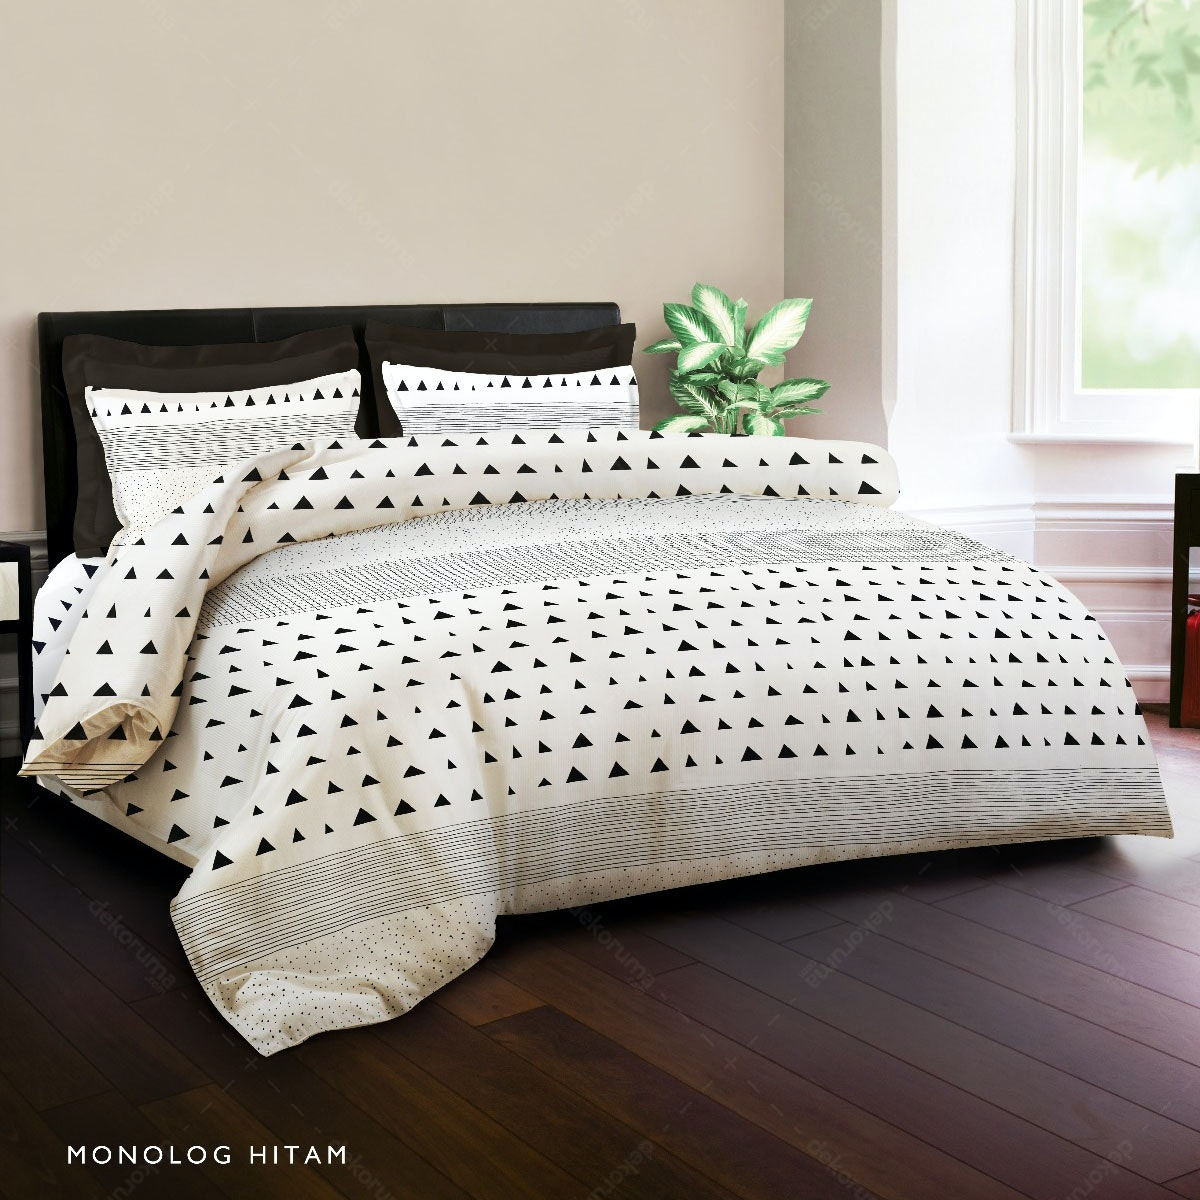 King Rabbit Set Bed Cover & Sprei Sarung Bantal Single Motif Monolog - Hitam Uk 100x200x40 cm